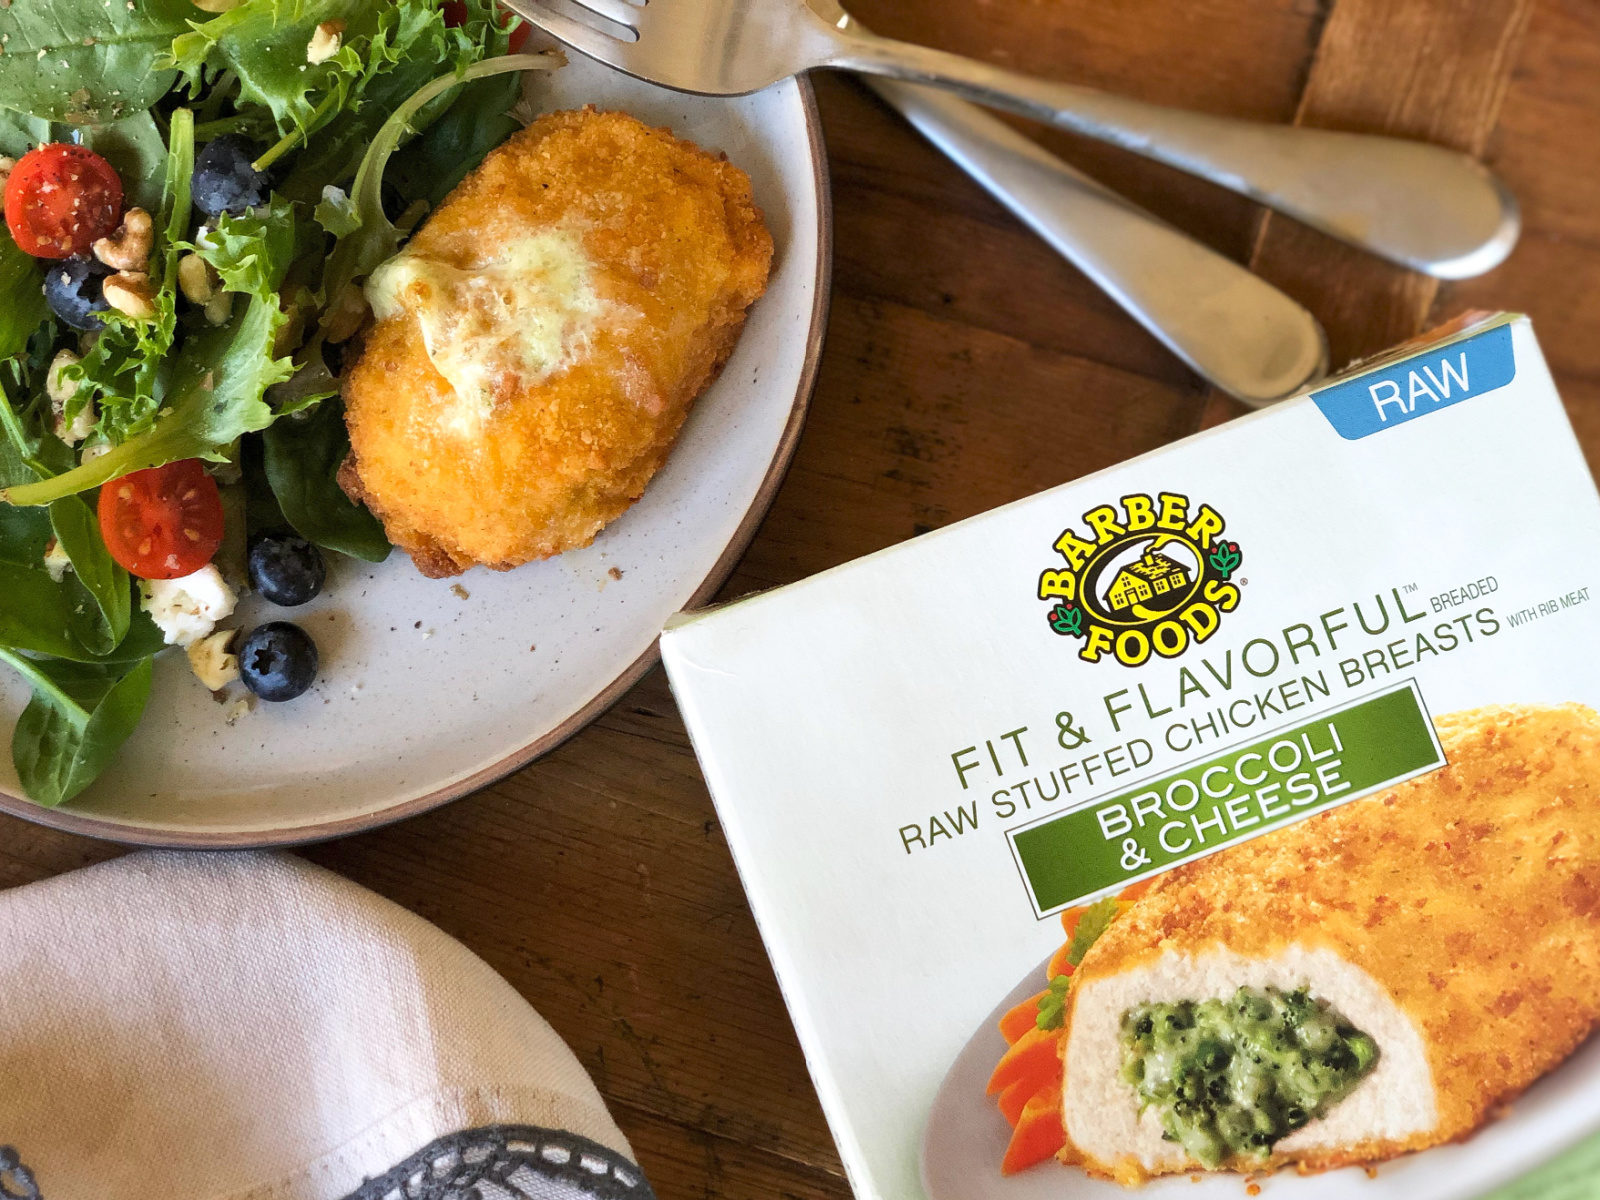 Barber Foods Stuffed Chicken Breasts As Low As $1.25 At Publix on I Heart Publix